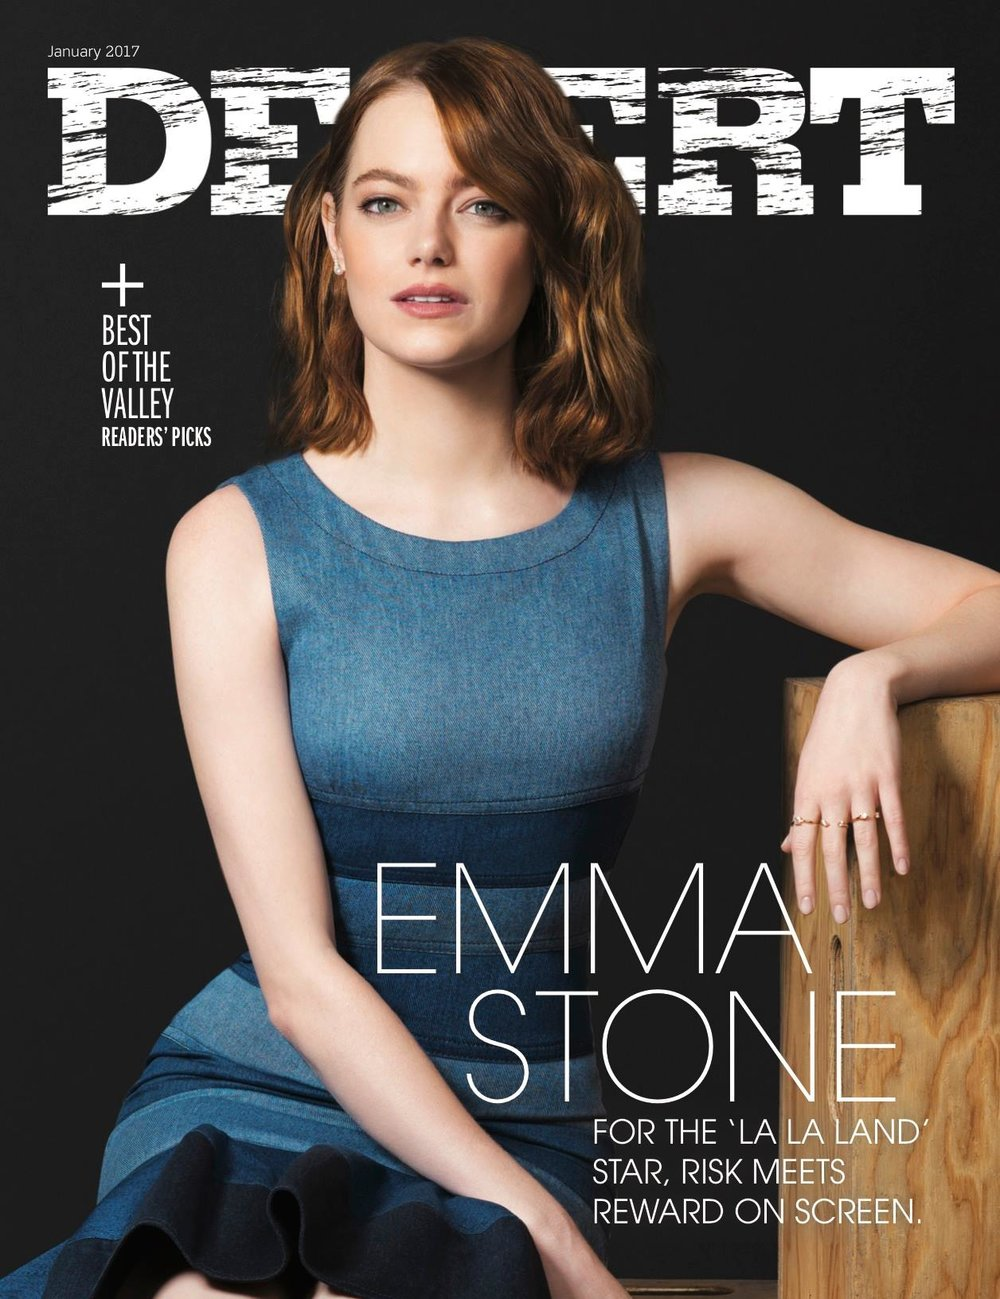 JANUARY 2017 - Meet a woodworker creating works of art, craft cocktails to impress on New Year's Eve and get the scoop on Emma Stone's resonant role in